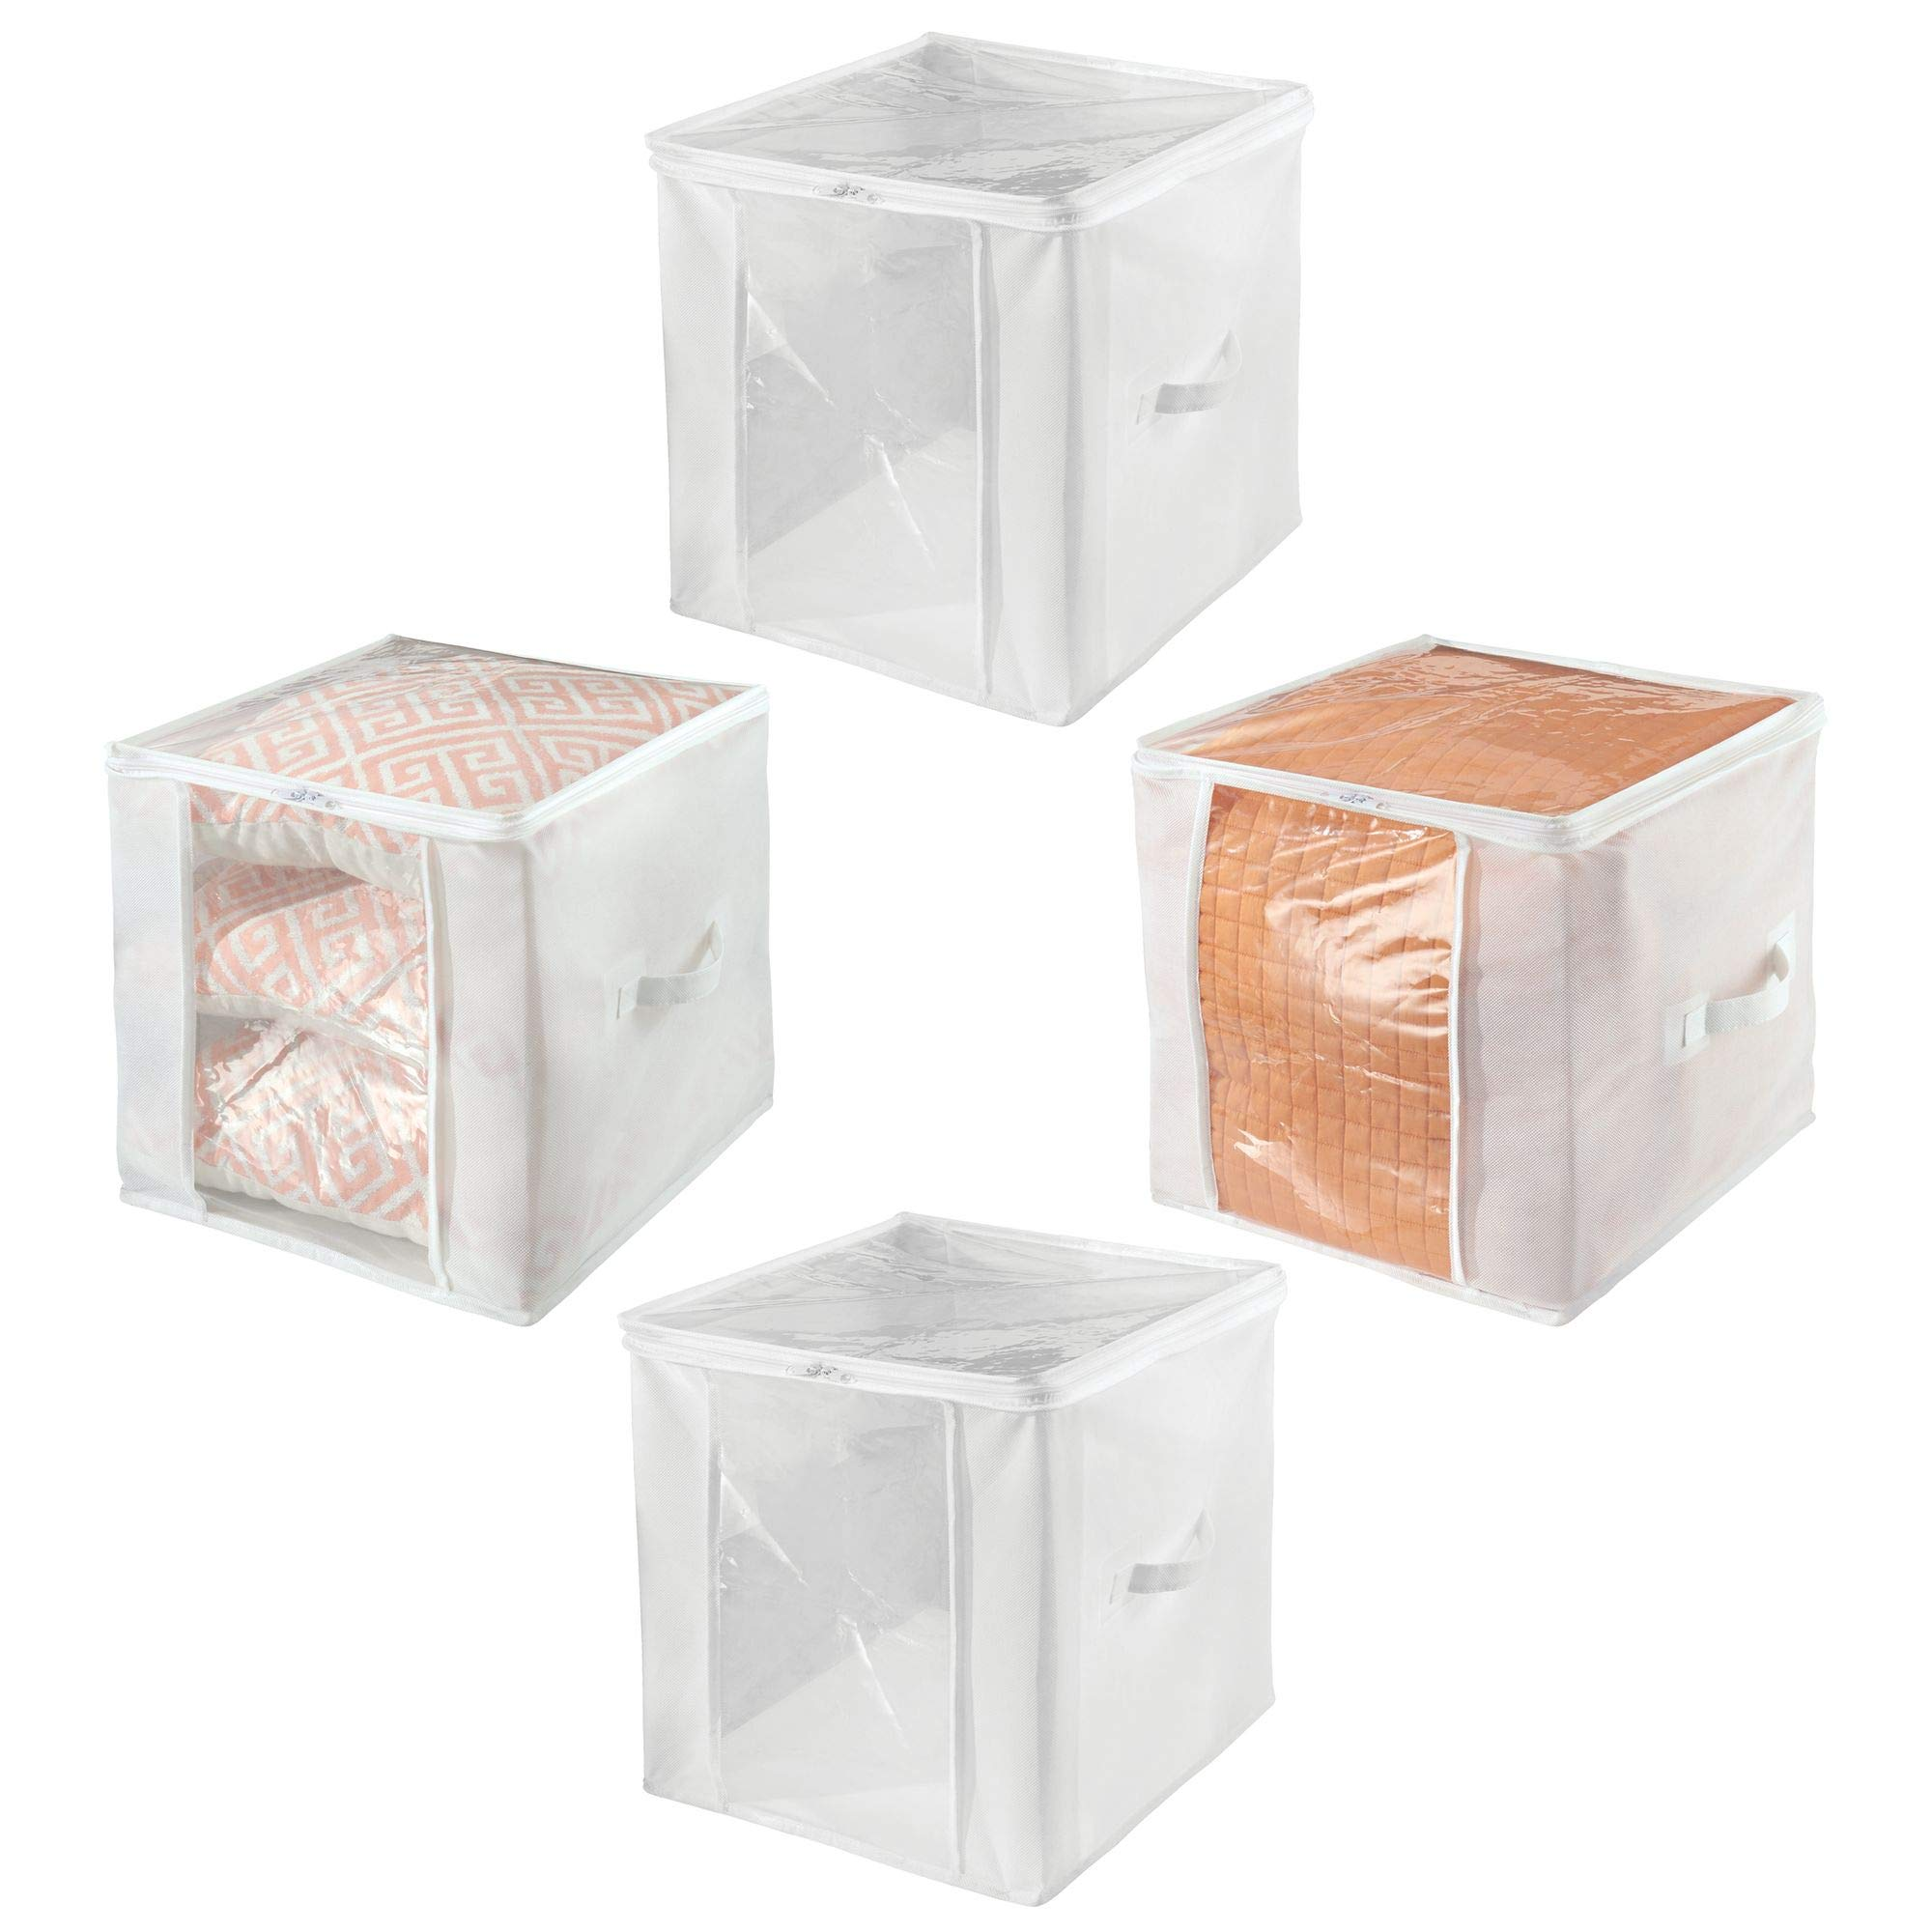 mDesign Soft Fabric Closet Storage Organizer Zipper Bag, Large Cube - Clear Window, Attached Lid with Zipper Closure, Built-in Handles for Bedroom, Hallway, Entryway Closets - Pack of 4, Clear/White